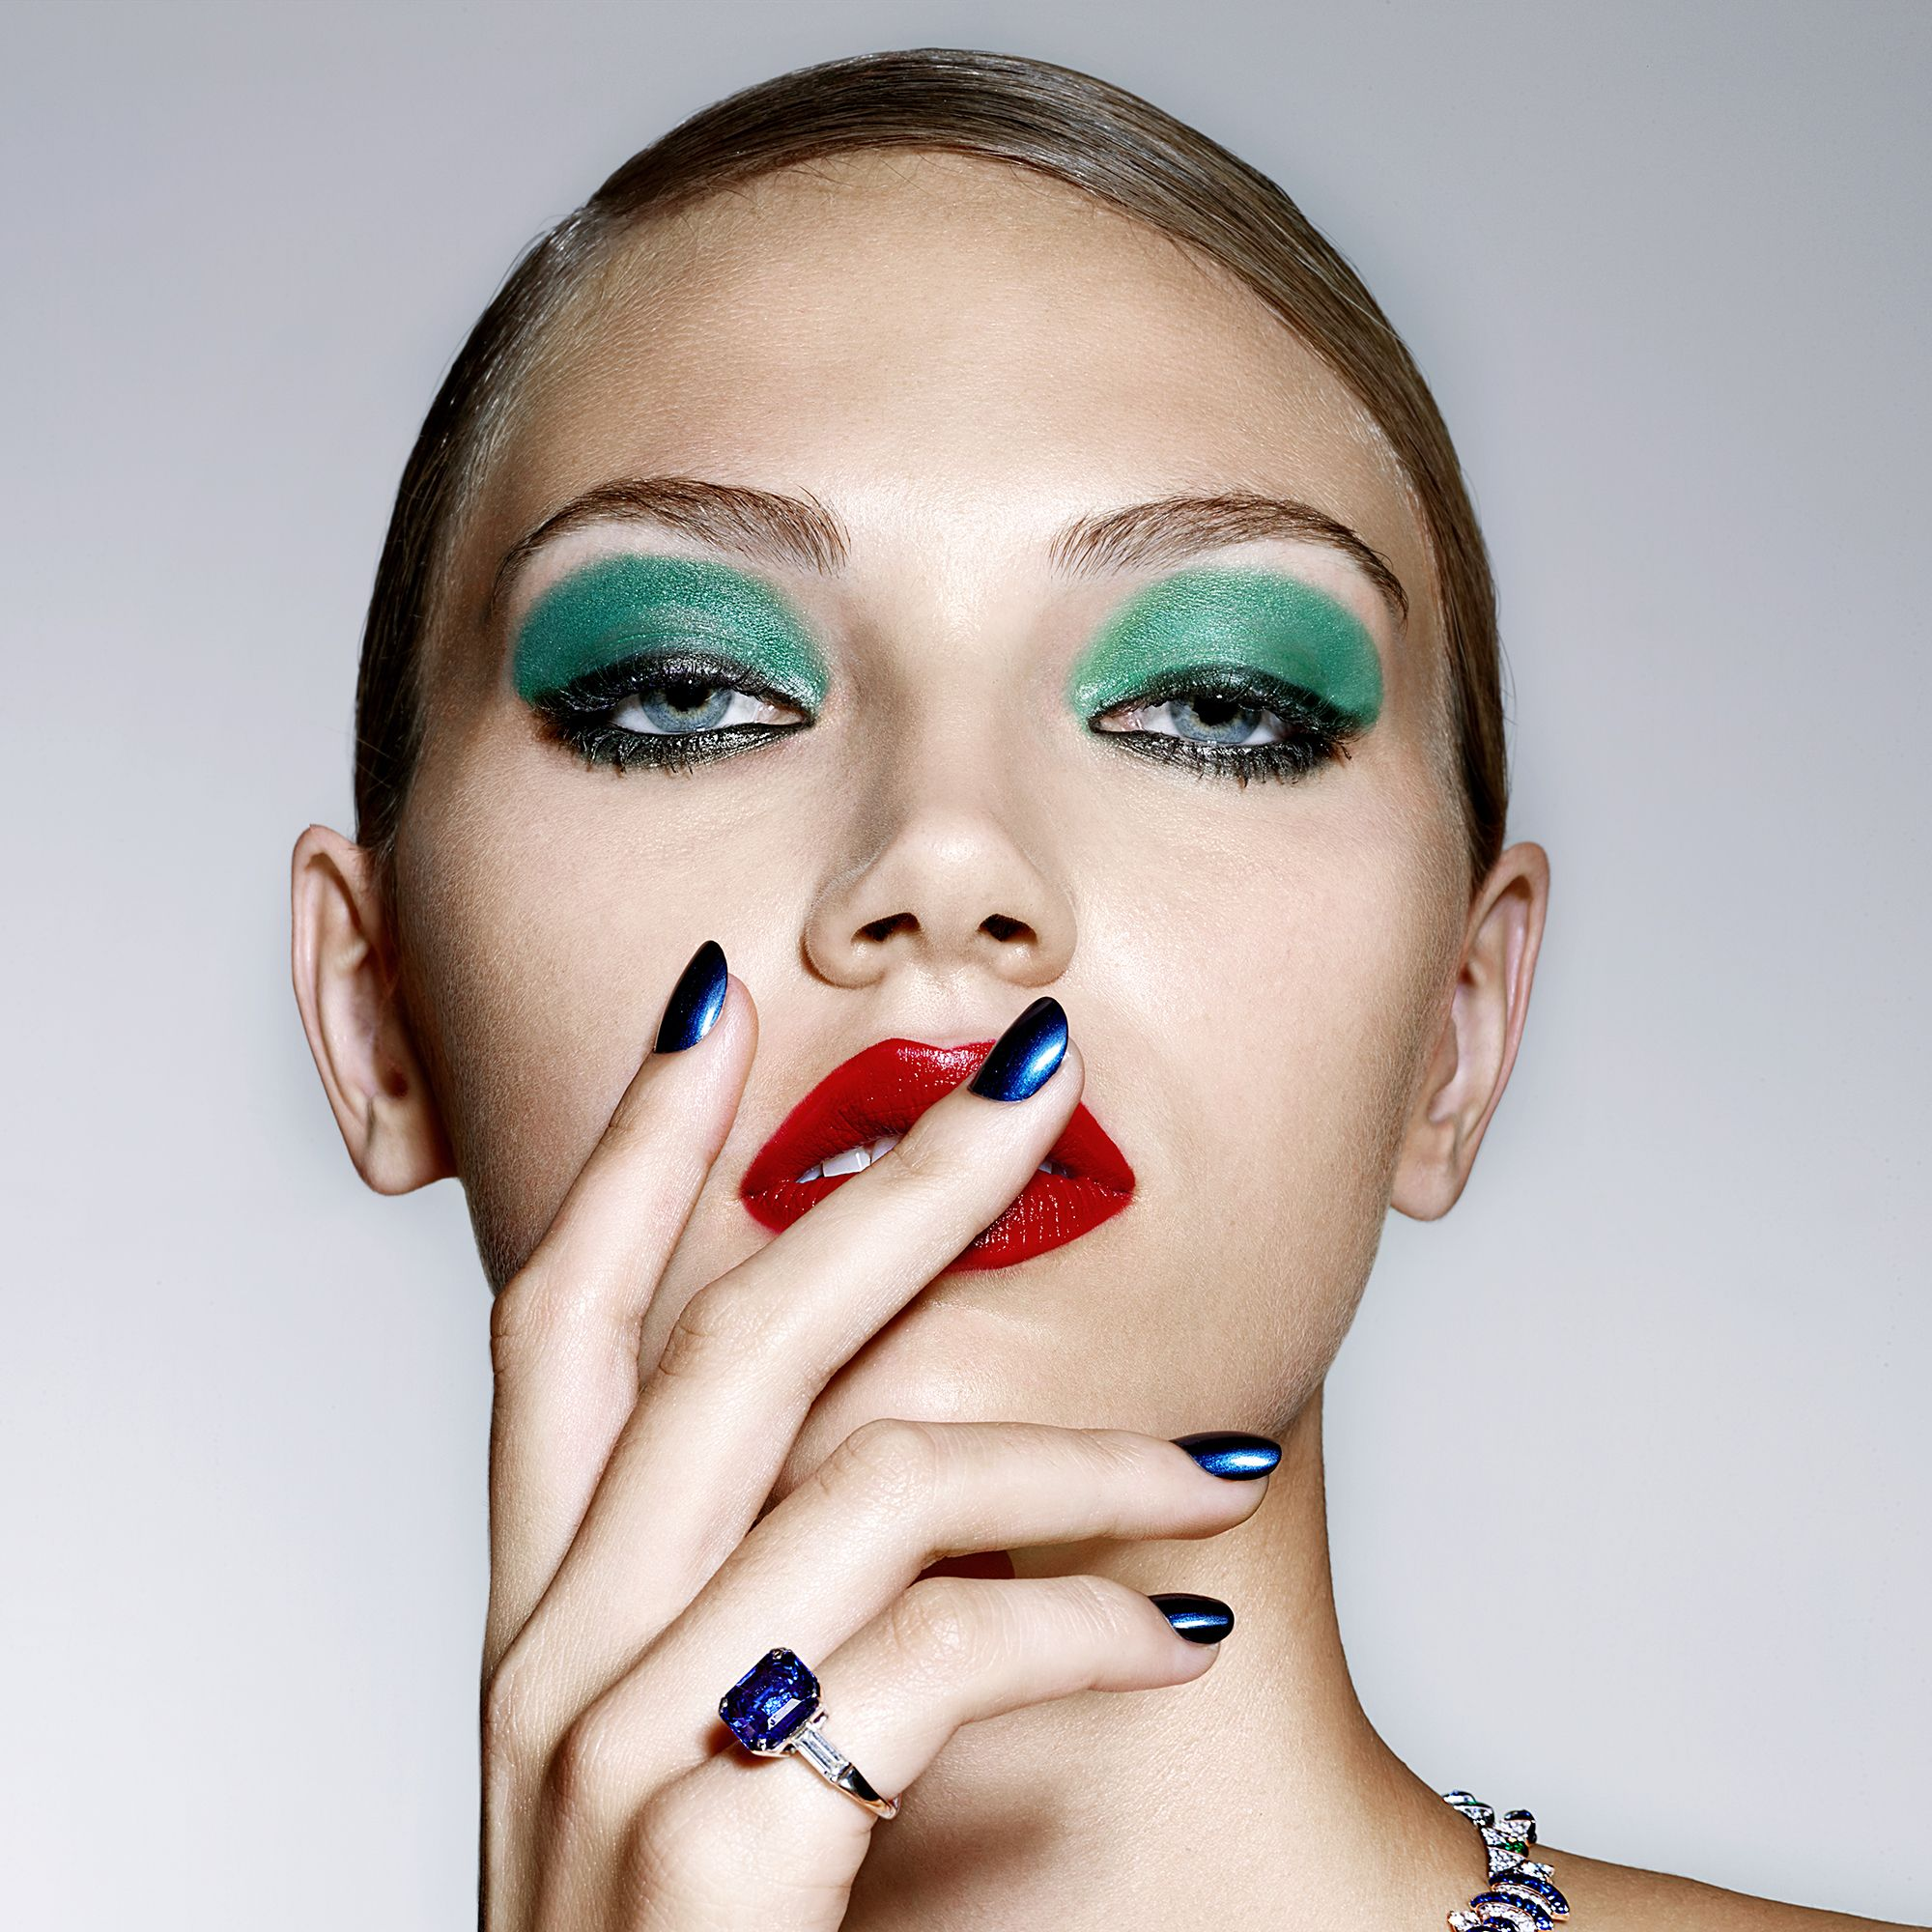 """<p><strong data-redactor-tag=""""strong"""" data-verified=""""redactor"""">BEAUTY BAZAAR: </strong>For sapphire-blue tips, wear <a href=""""http://www.lancome-usa.com/makeup/lips-and-nails/nail-polish/vernis-in-love/1000429.html"""" target=""""_blank"""" data-tracking-id=""""recirc-text-link"""">Lancôme Vernis in Love in Rive Gauche</a> ($16).</p><p><strong data-redactor-tag=""""strong"""" data-verified=""""redactor"""">Bulgari </strong>necklace, bracelet, and ring, prices upon request, <a href=""""http://www.bulgari.com/en-us/"""" target=""""_blank"""" data-tracking-id=""""recirc-text-link"""">bulgari.com</a>.</p><p></p>"""